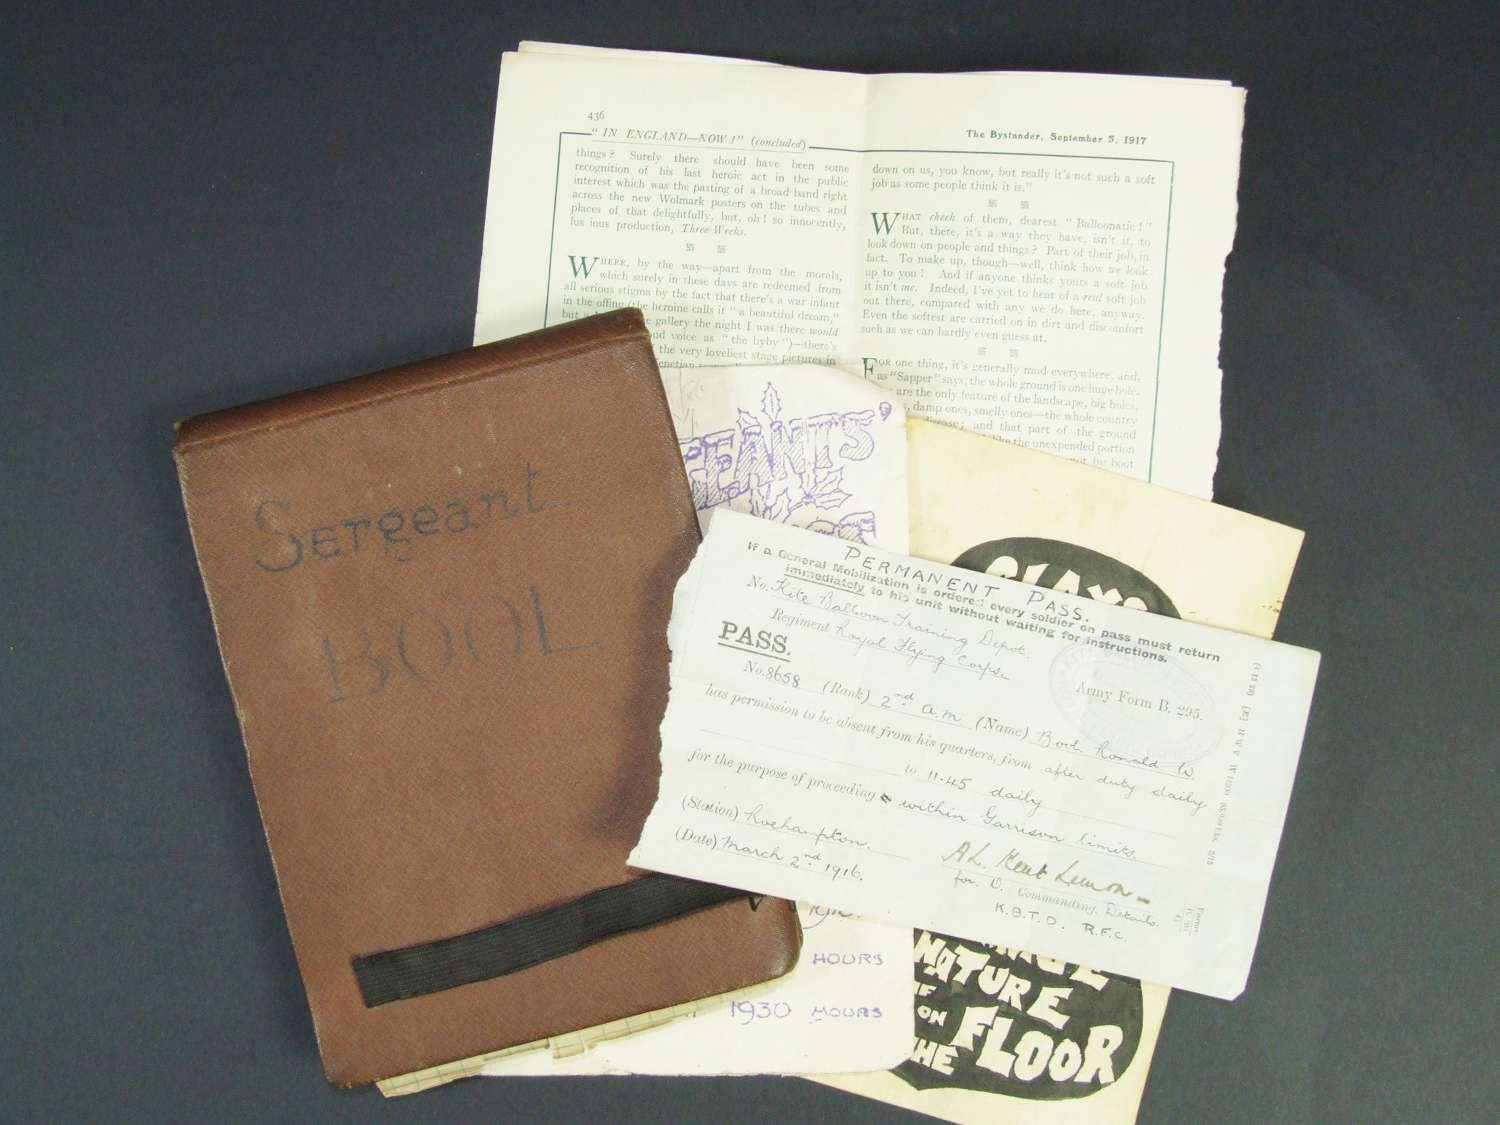 RFC Balloon Kite Observer's Log Book and Papers